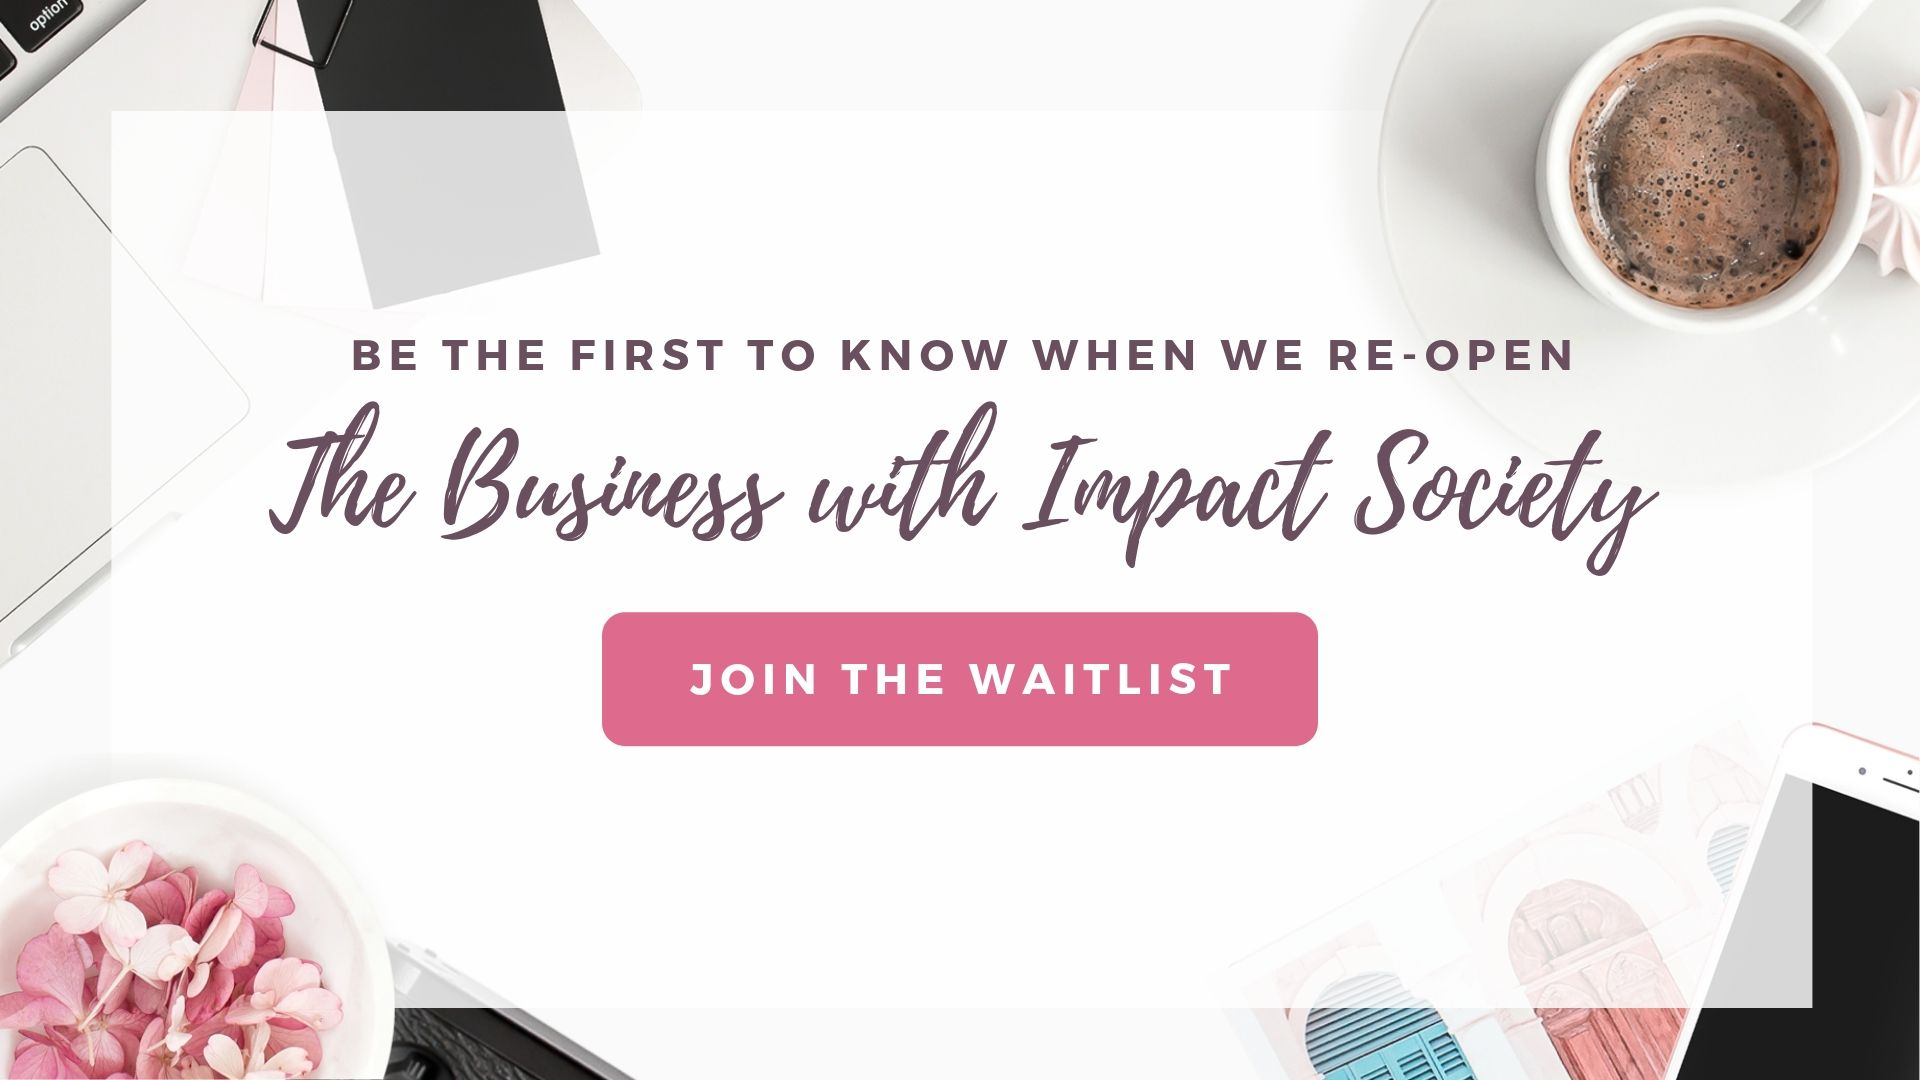 Click here to join the waitlist